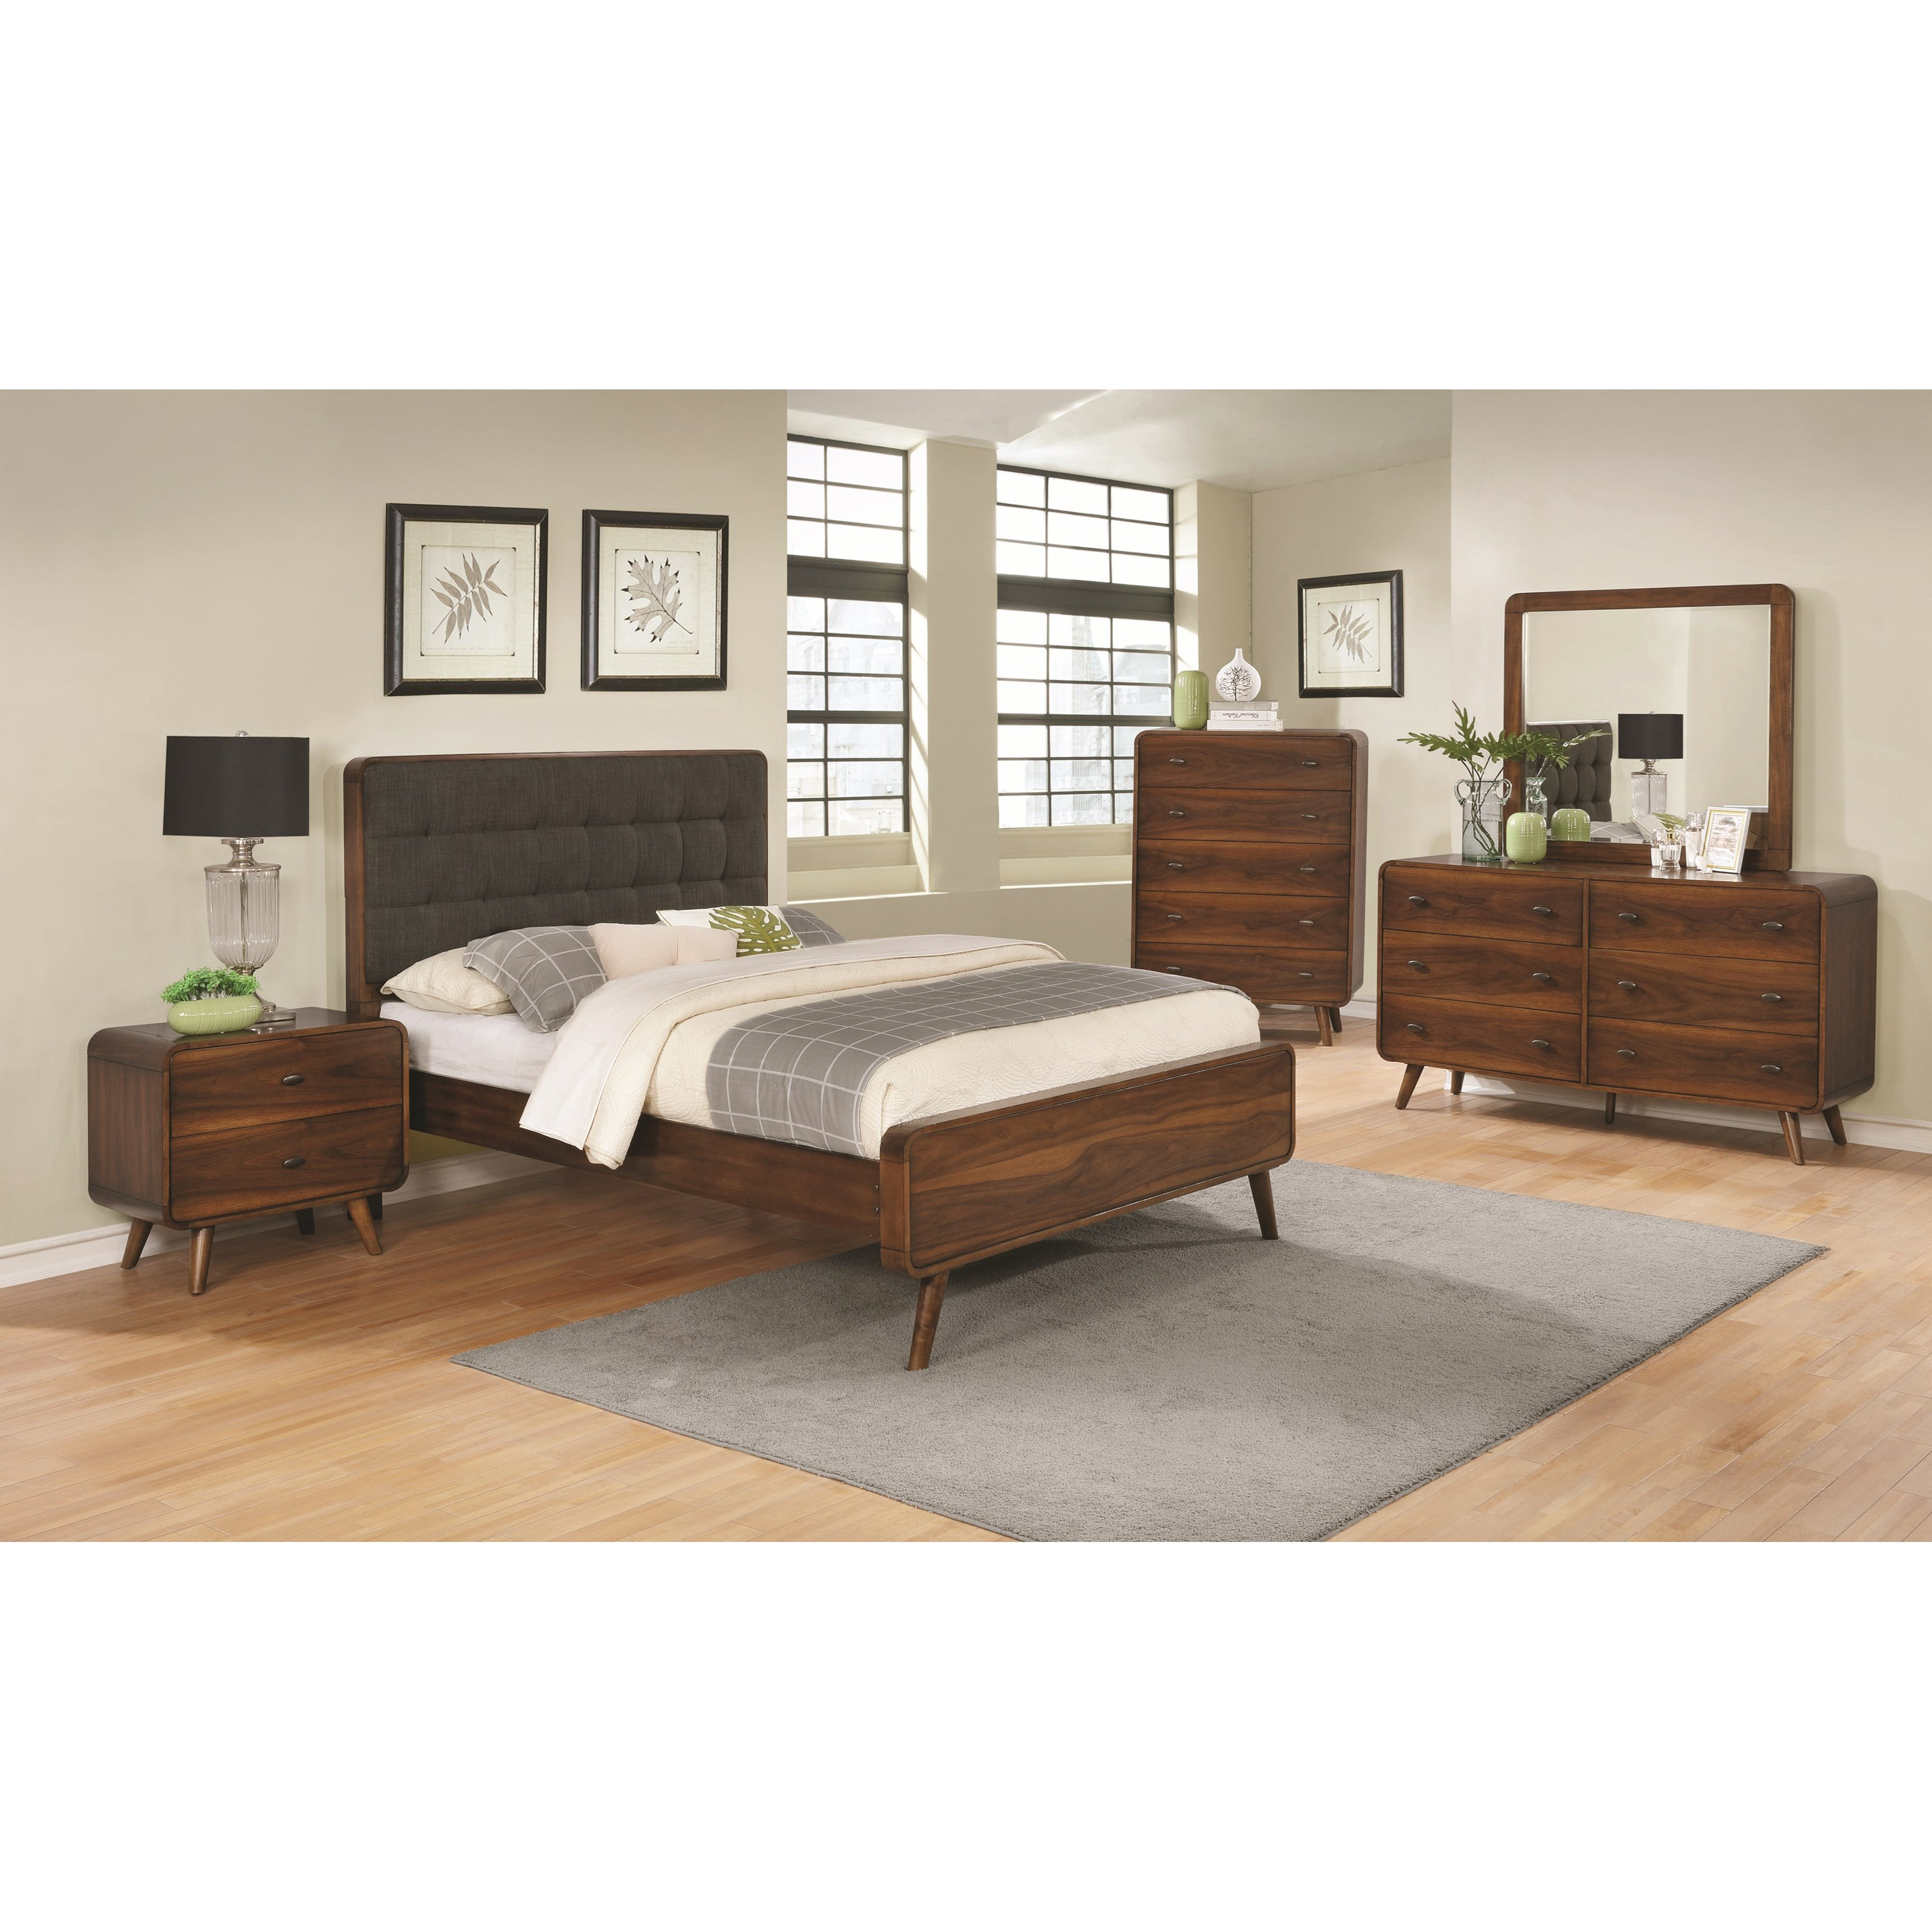 Robyn Queen Bedroom Group by Coaster at Furniture Fair - North Carolina